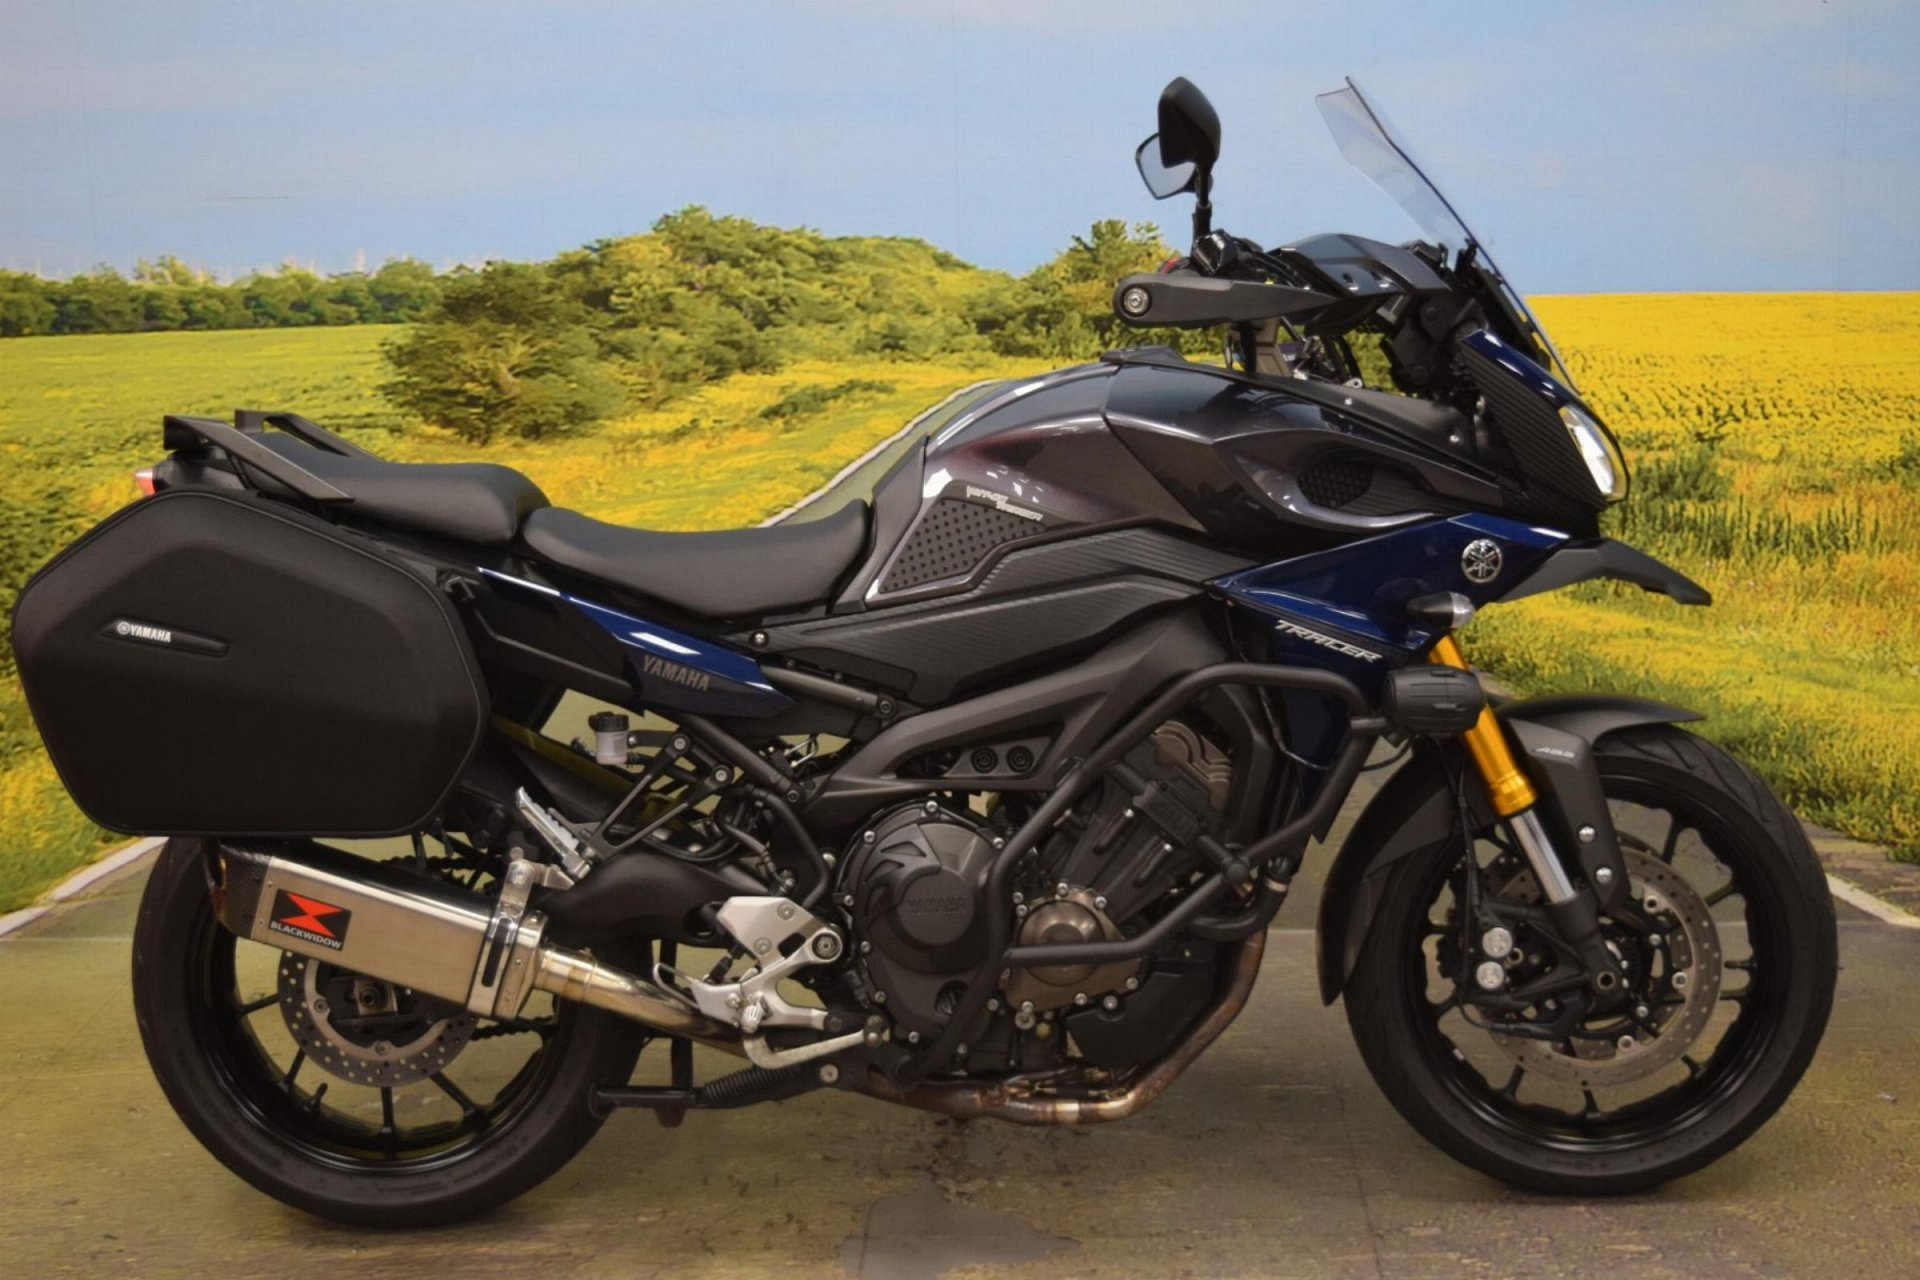 2016 Yamaha Tracer 900 for sale in Staffordshire